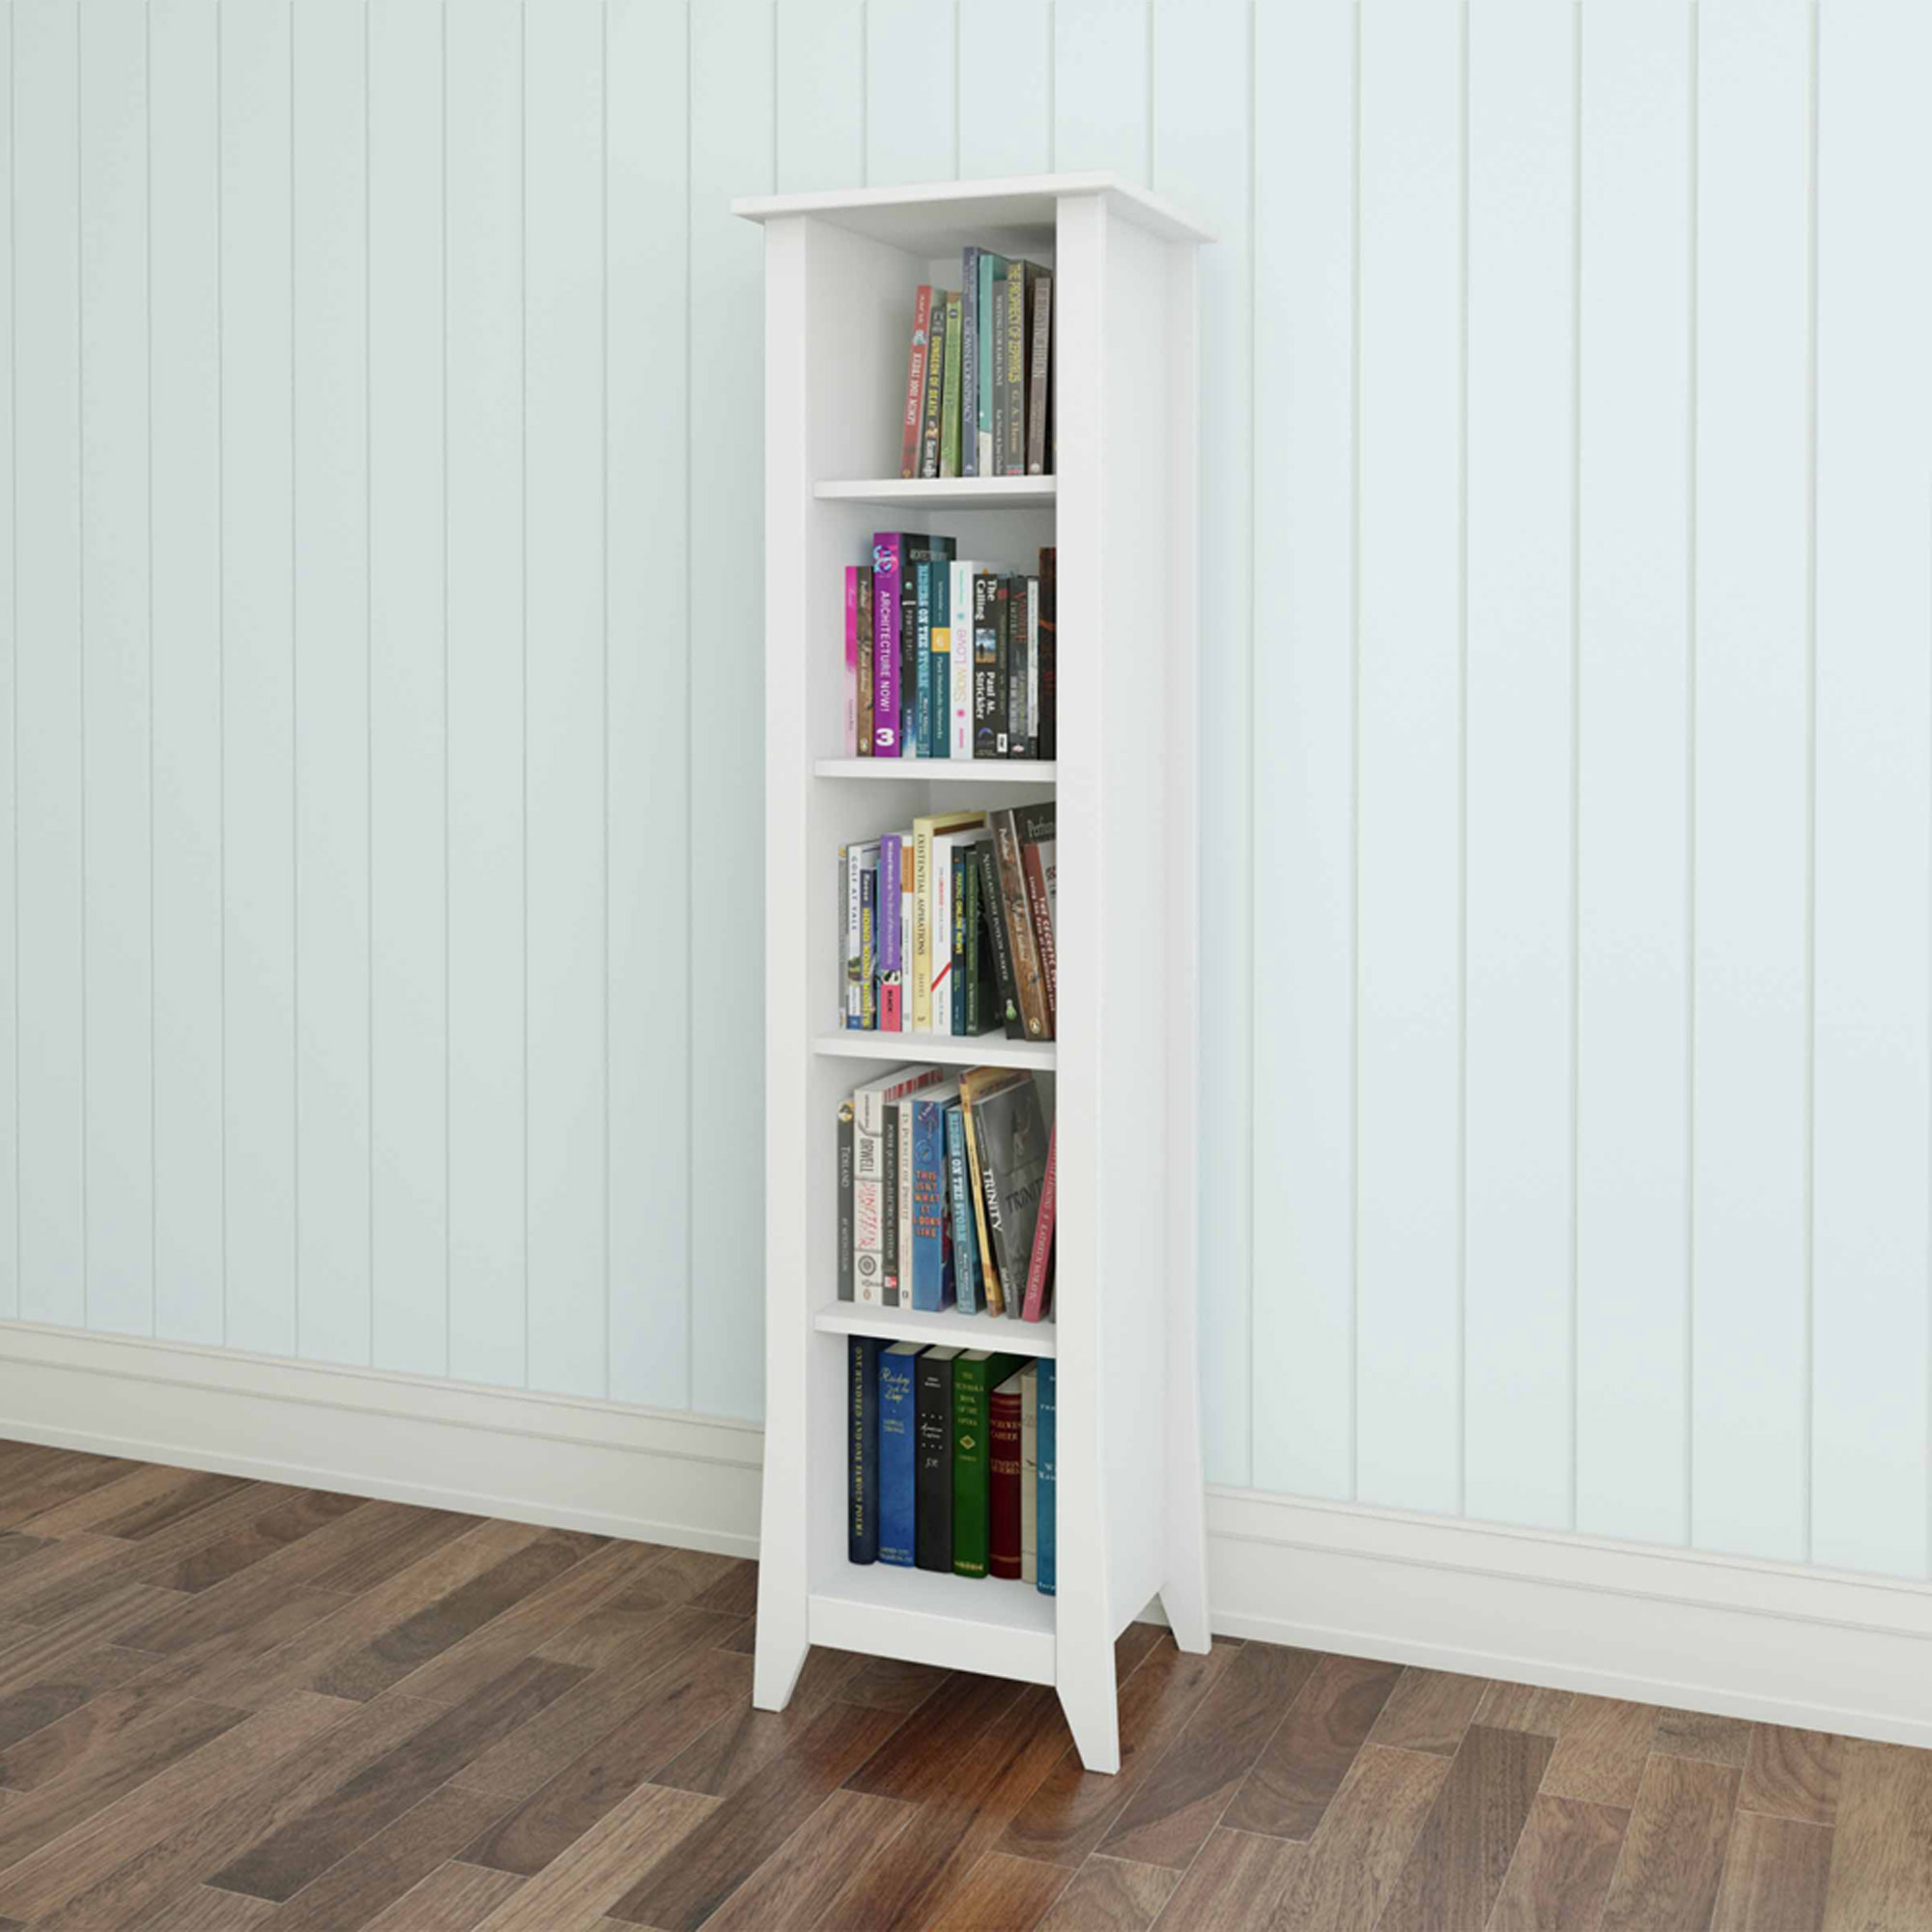 Vice Versa 5-Shelf Bookcase, White